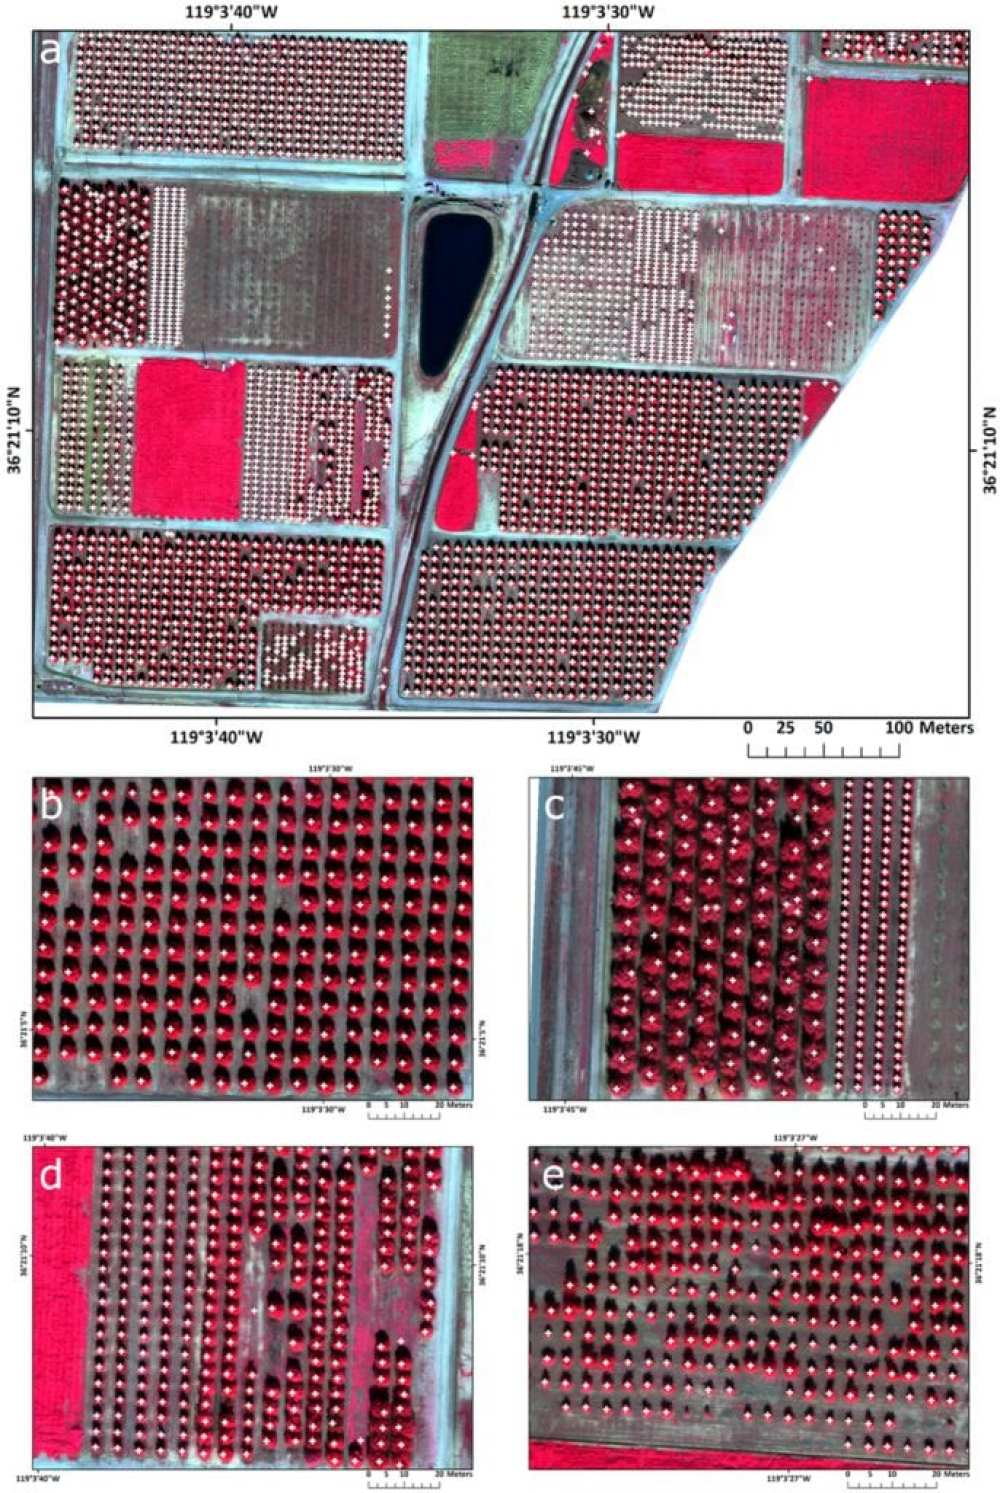 Final tree detection from the test area with white crosses indicating the location of trees: (a) the southern portion of LREC; (b) medium size trees correctly classified; (c) large canopy trees with reduced effect of multiple crown detection, after the object-based refinement; (d) similar sized trees were correctly classified; and (e) heterogeneous tree canopies sizes were correctly classified